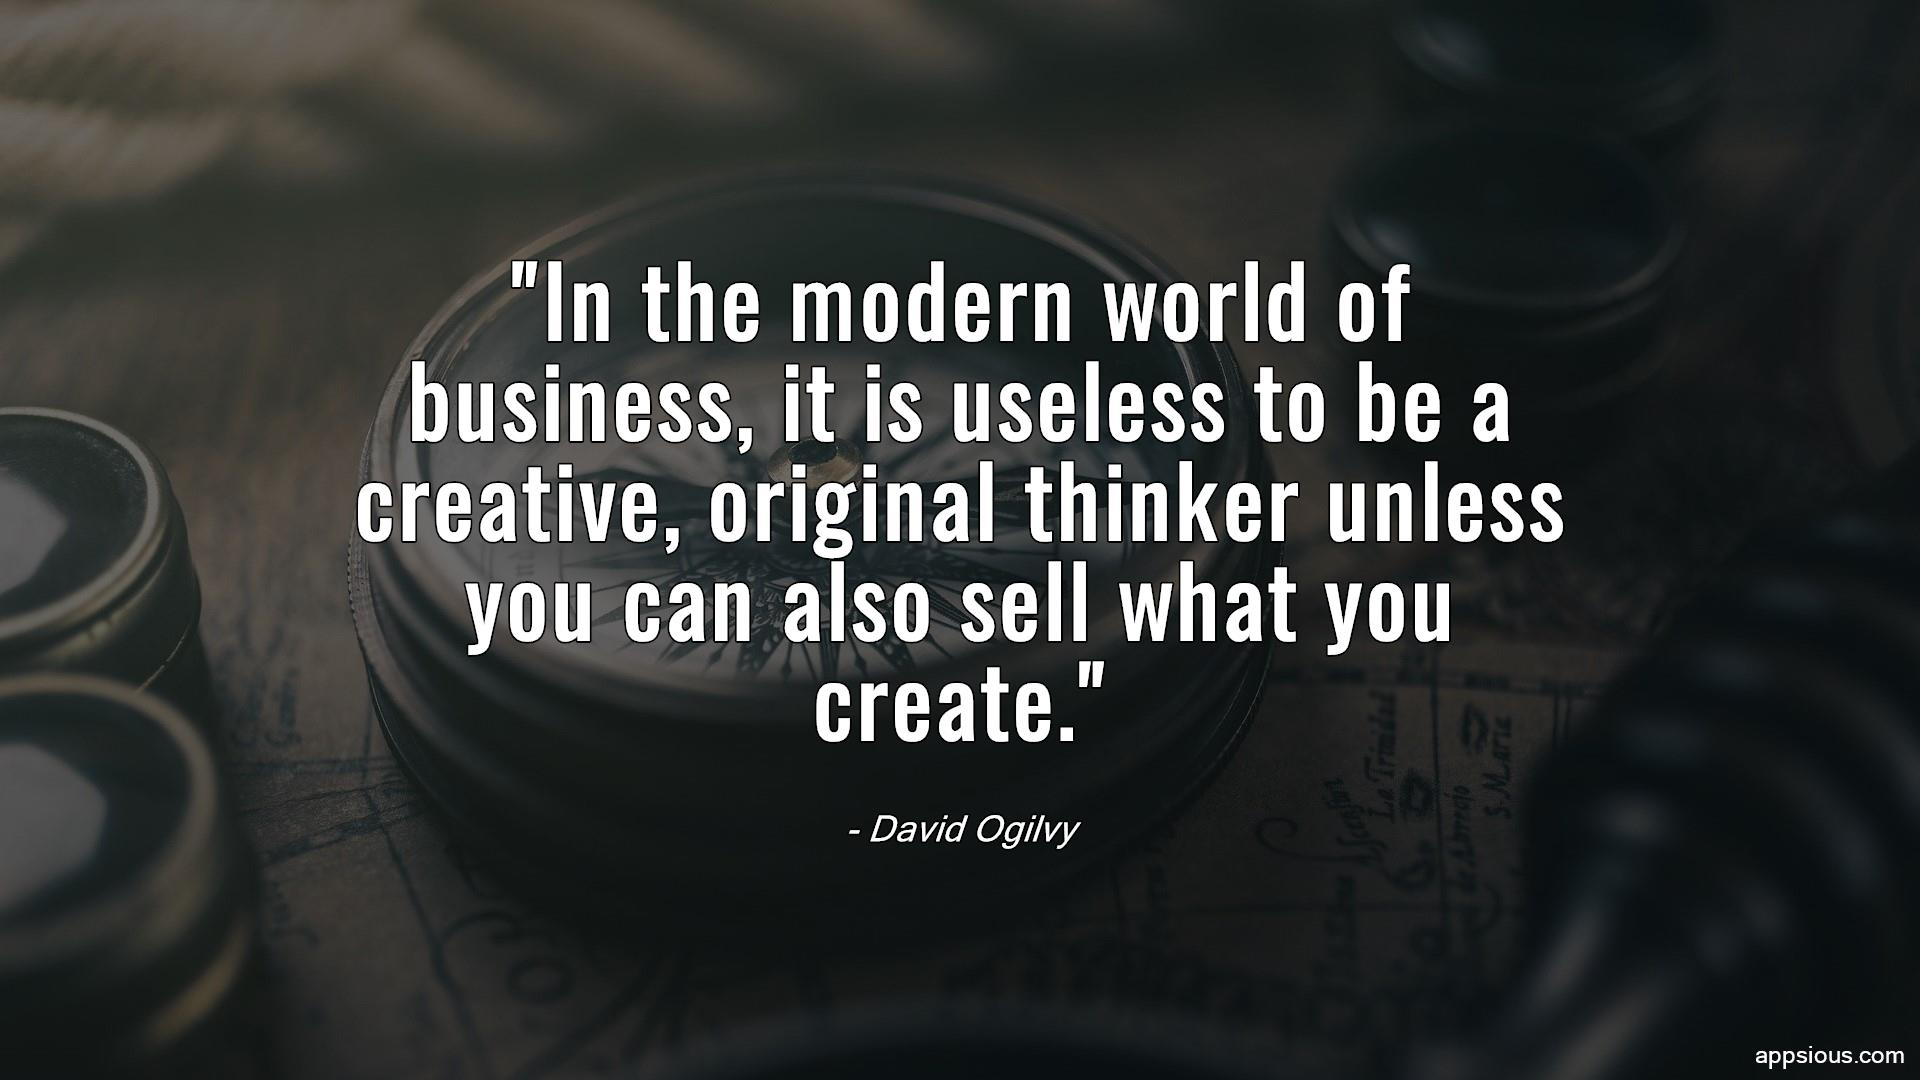 In the modern world of business, it is useless to be a creative, original thinker unless you can also sell what you create.